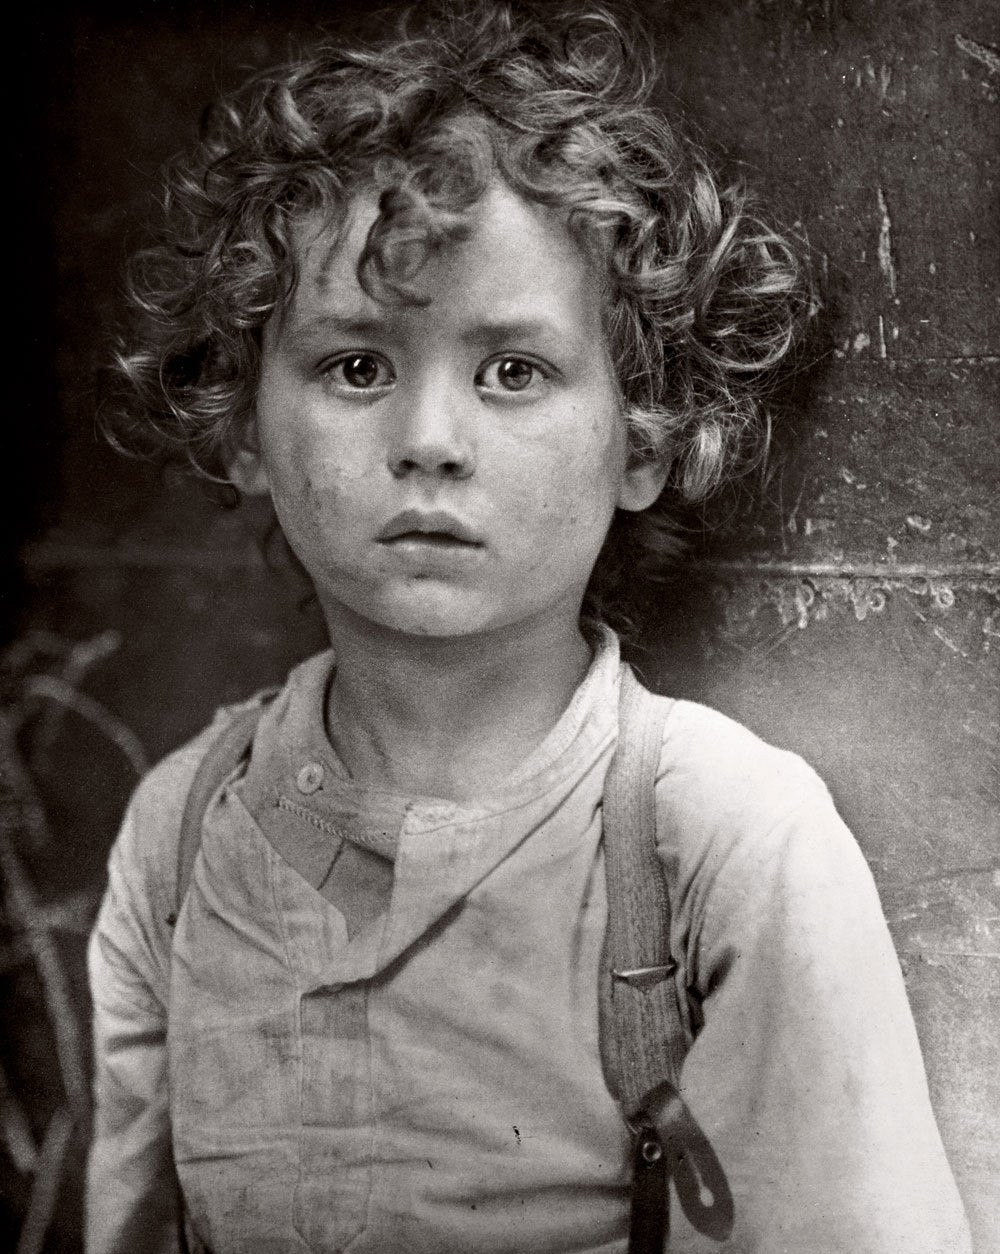 Little Boy, Lewis Hine